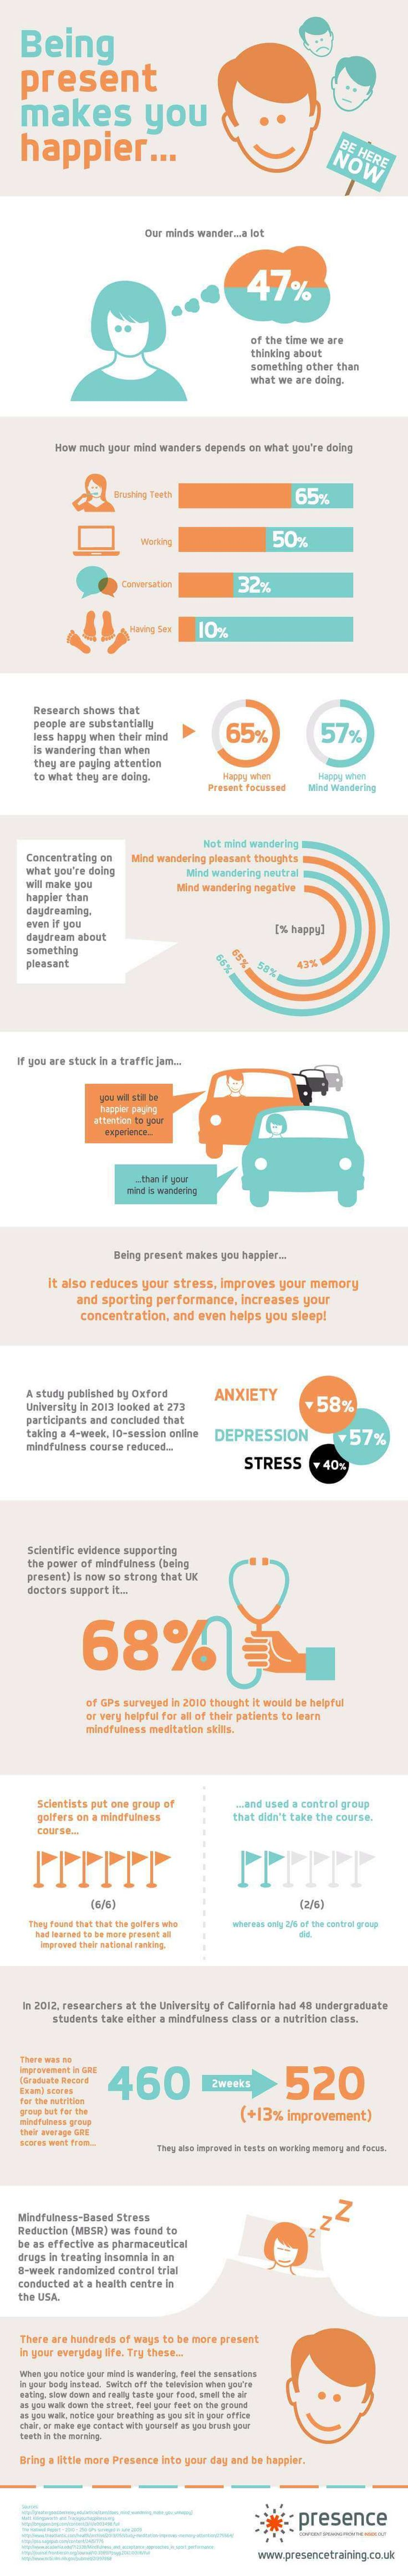 why and how being present makes you happier infographic